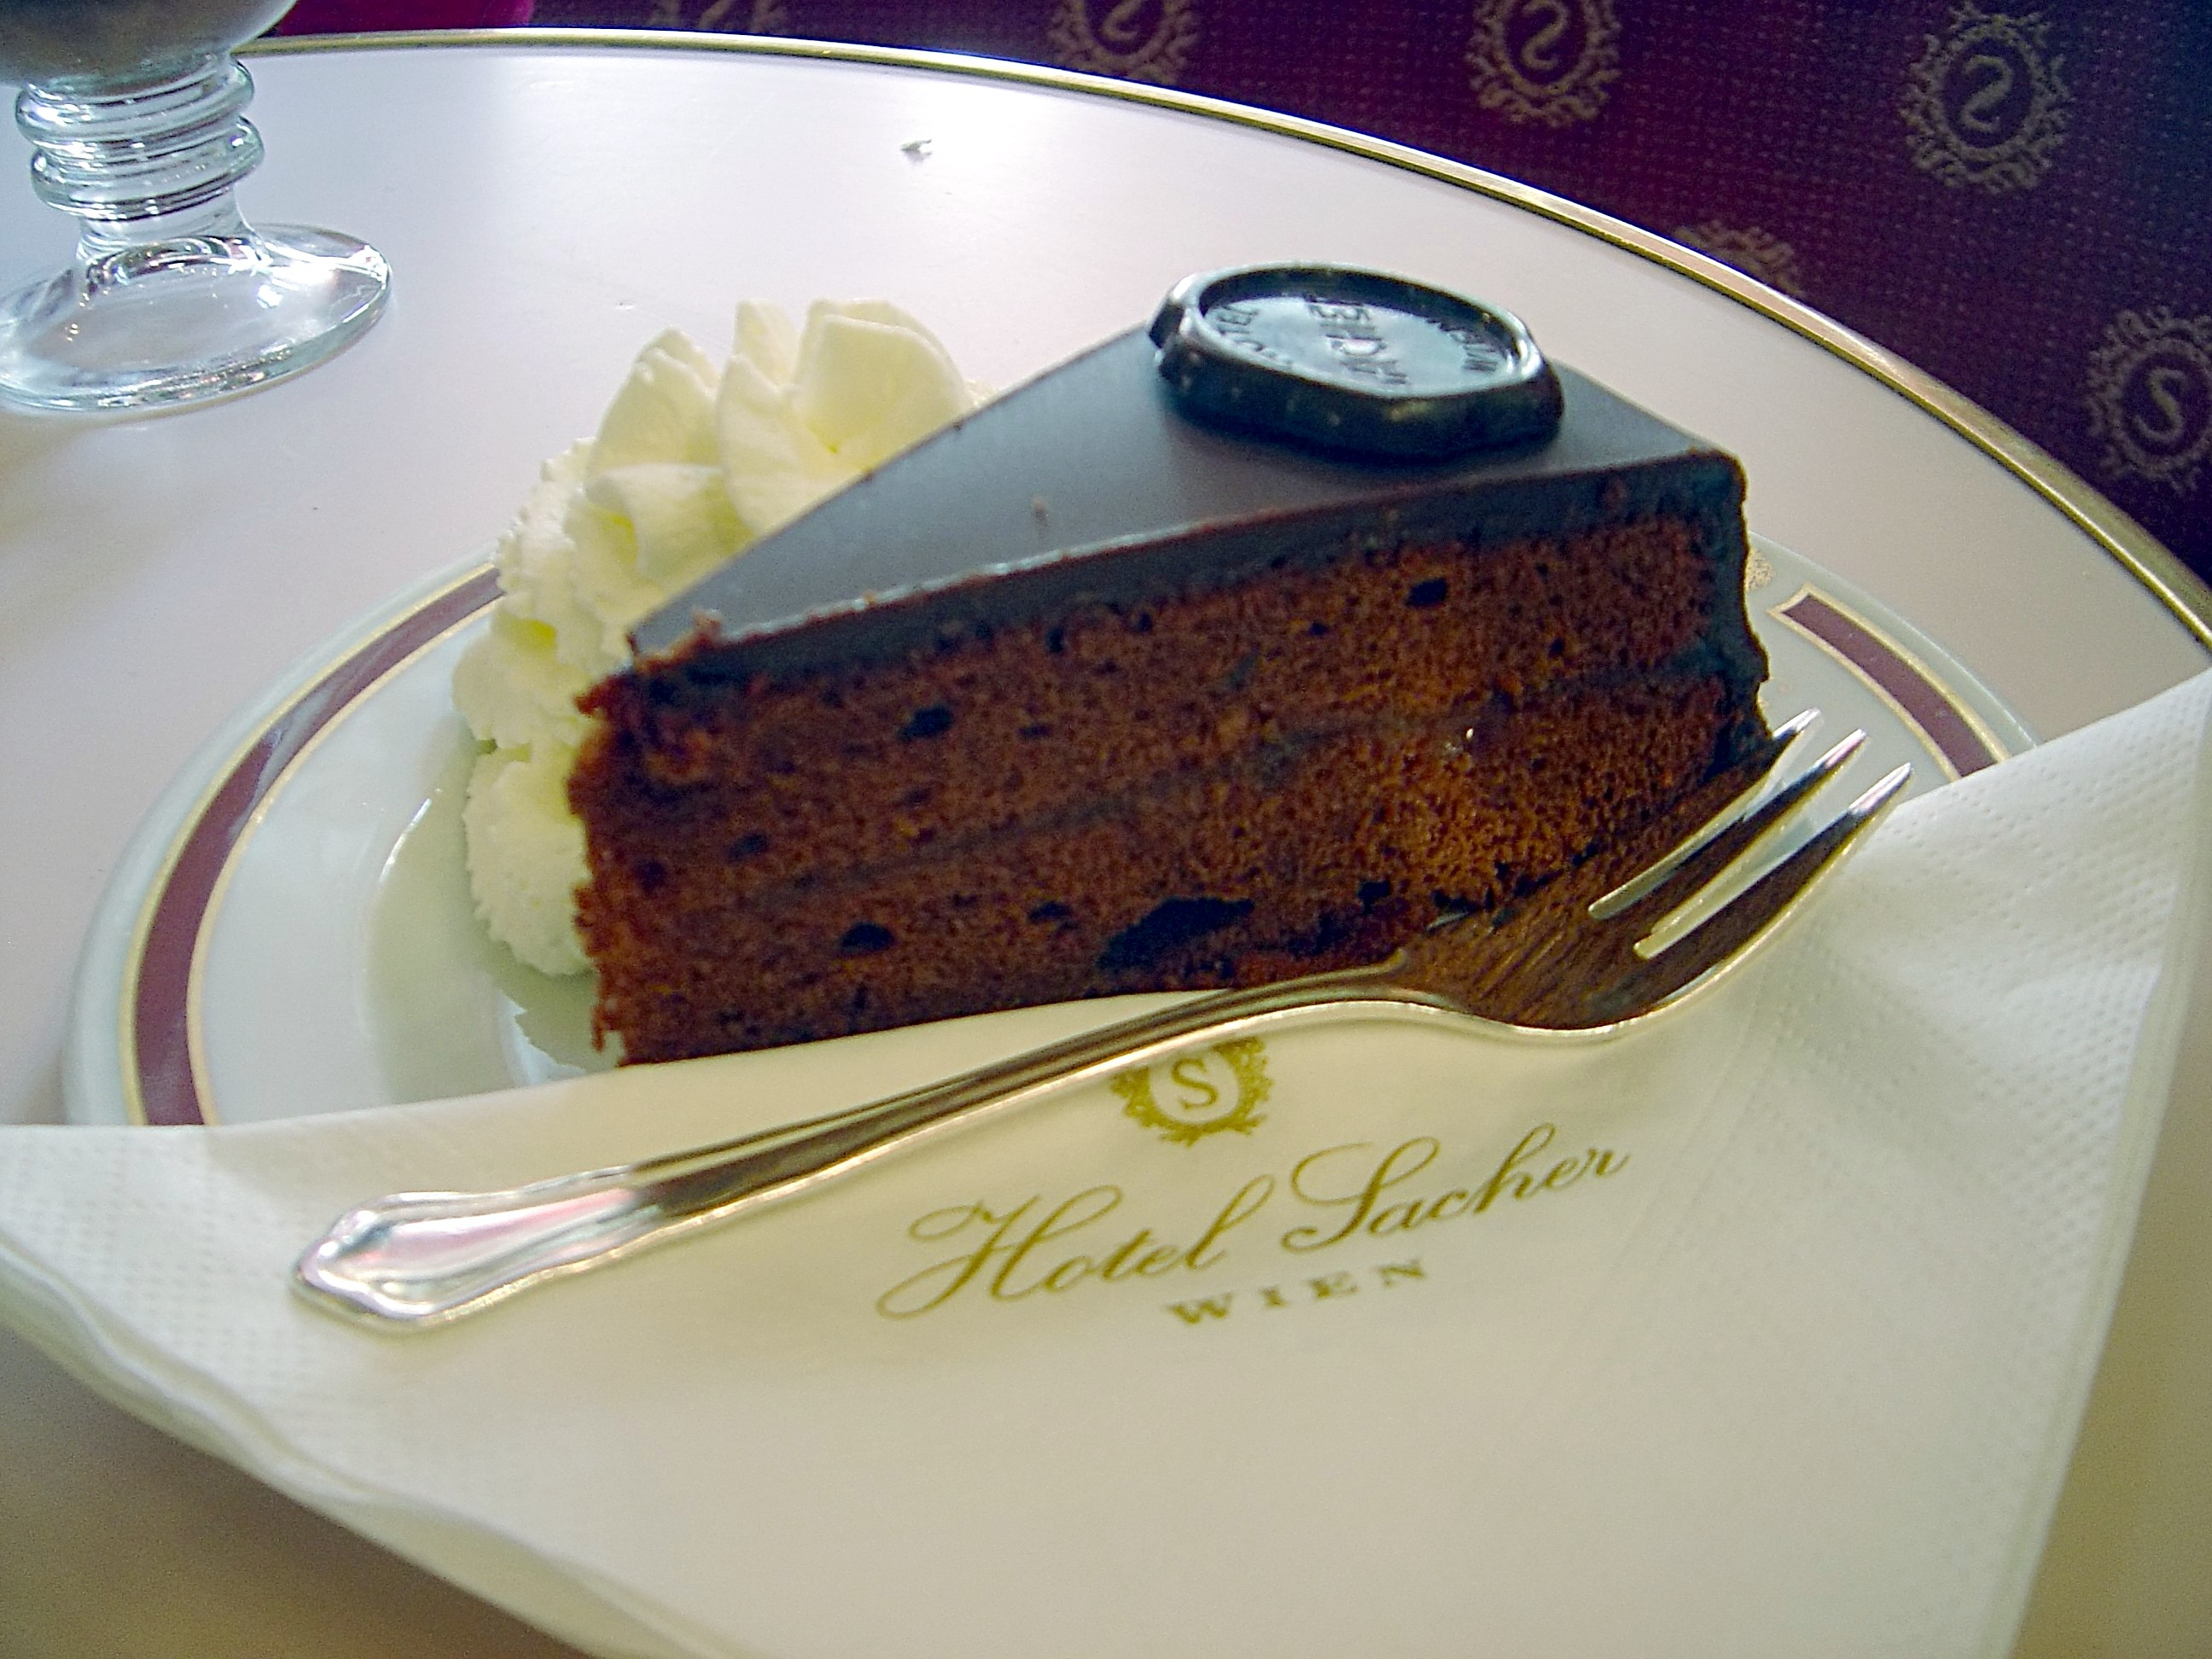 http://upload.wikimedia.org/wikipedia/commons/b/b8/Sachertorte_DSC03027.JPG